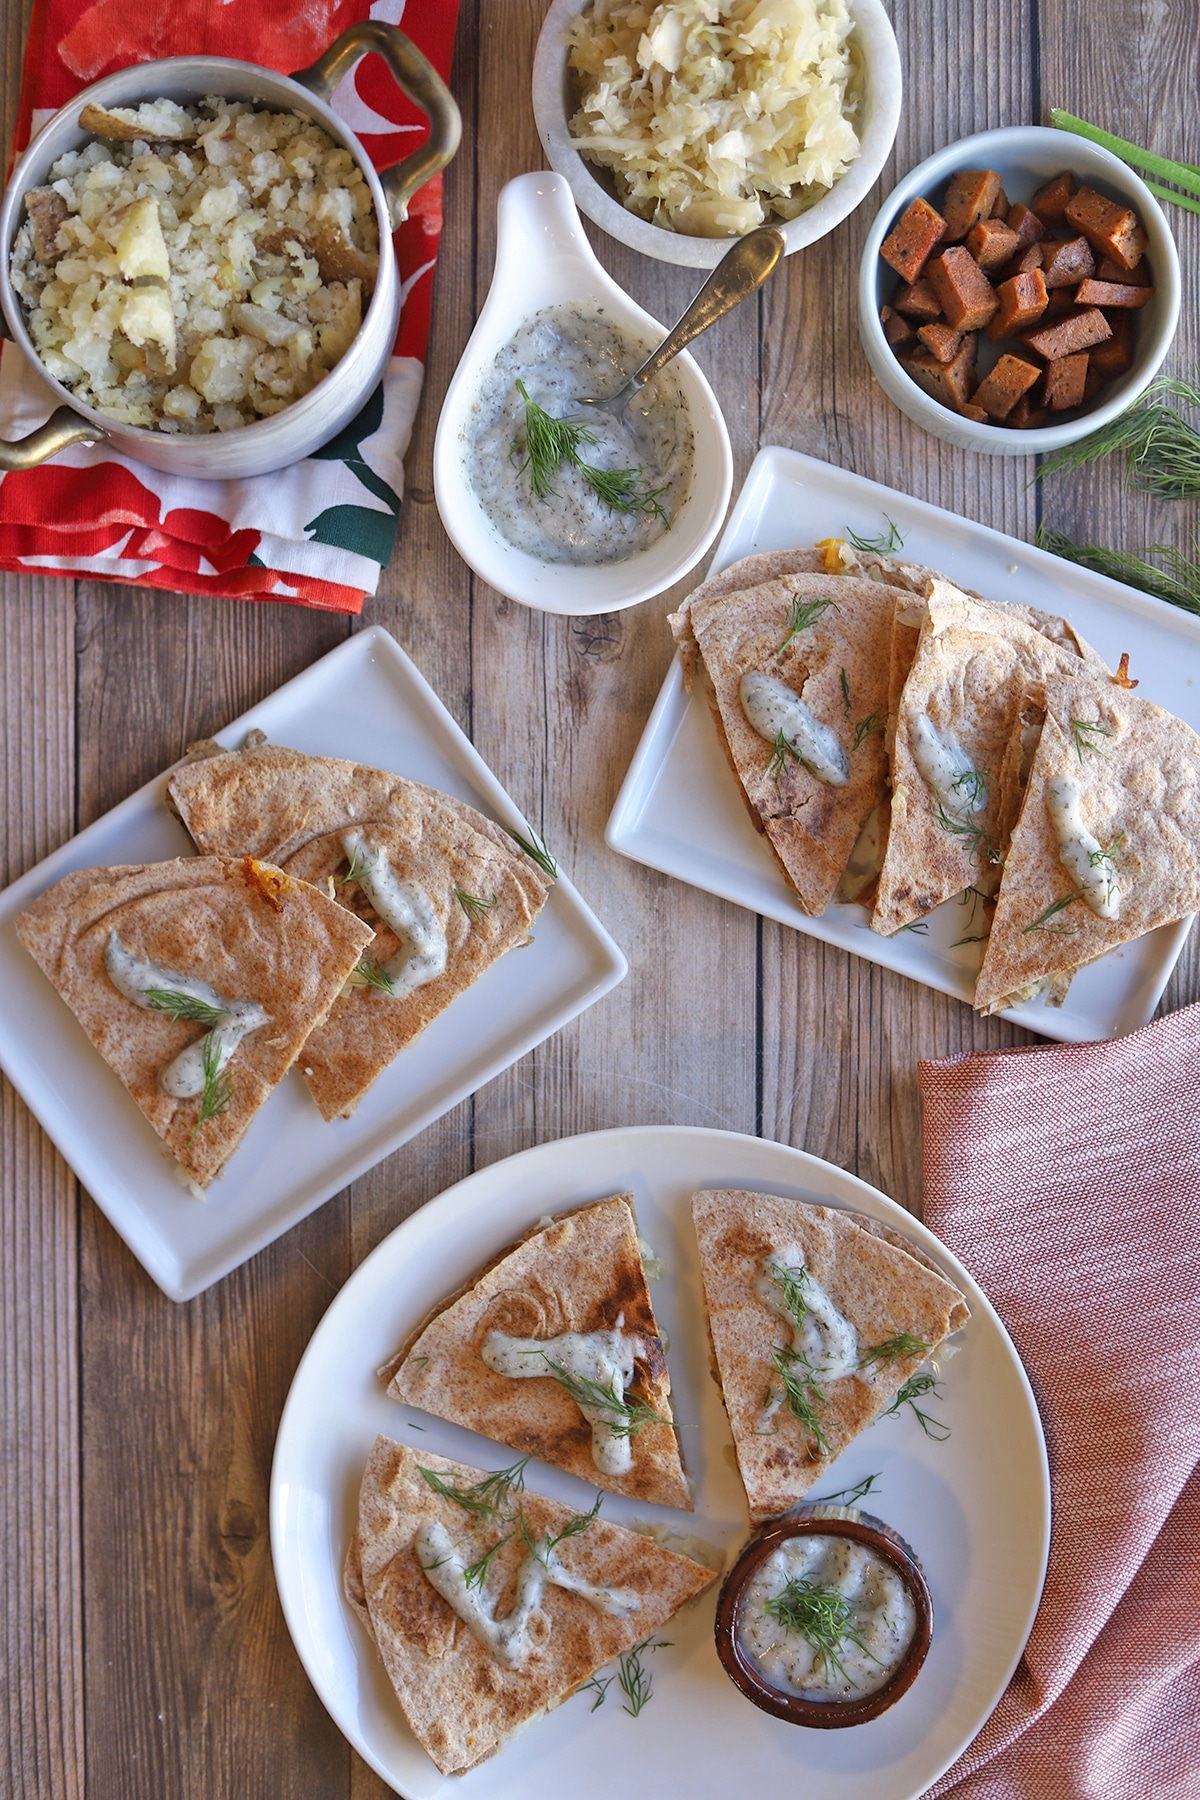 Overhead quesadillas on plates with potatoes and yogurt ranch sauce.